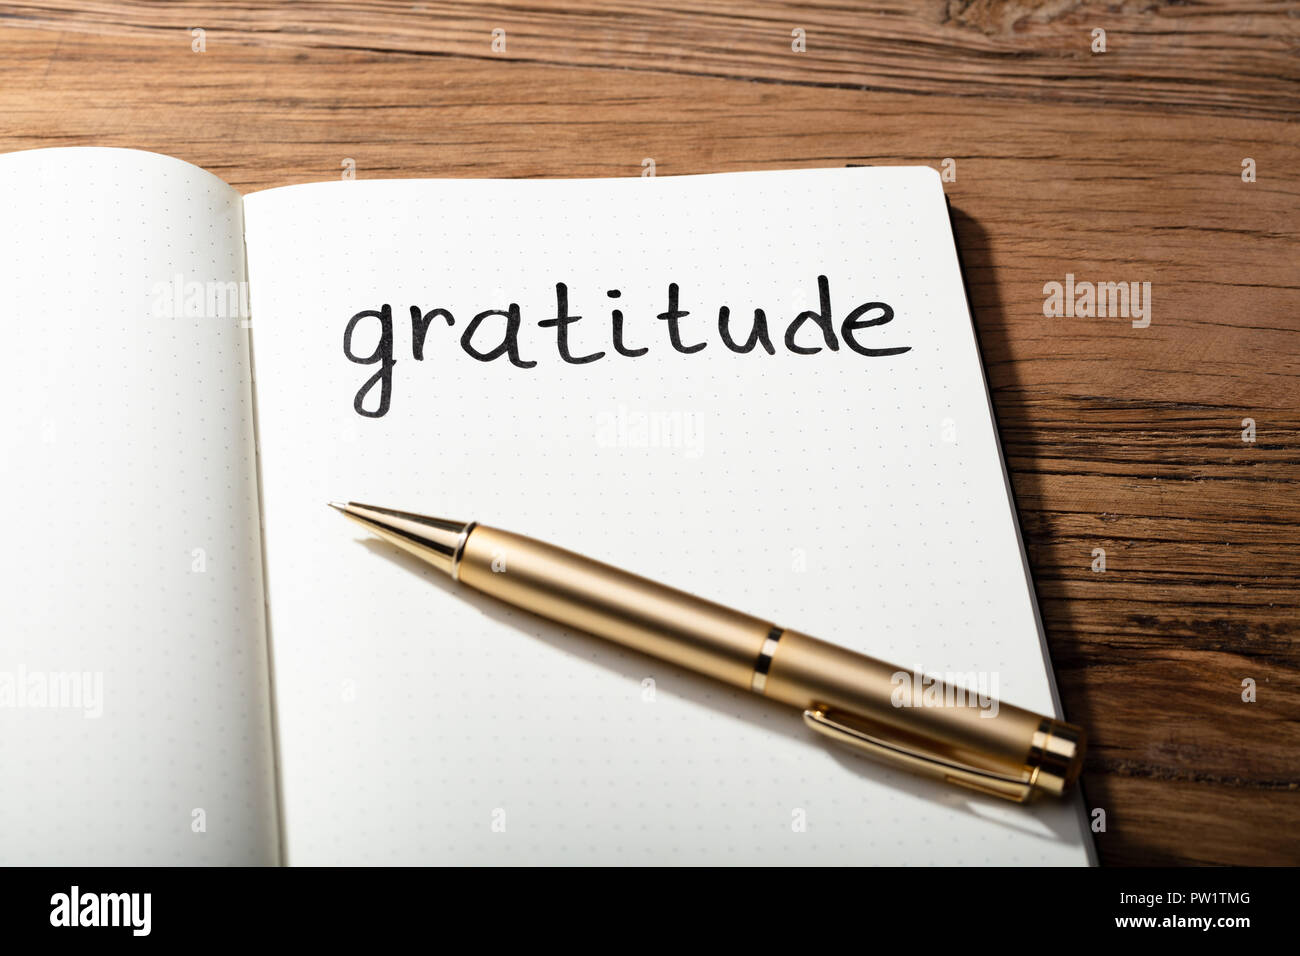 Close-up Of Gratitude Word With Pen On Notebook Over Wooden Desk - Stock Image